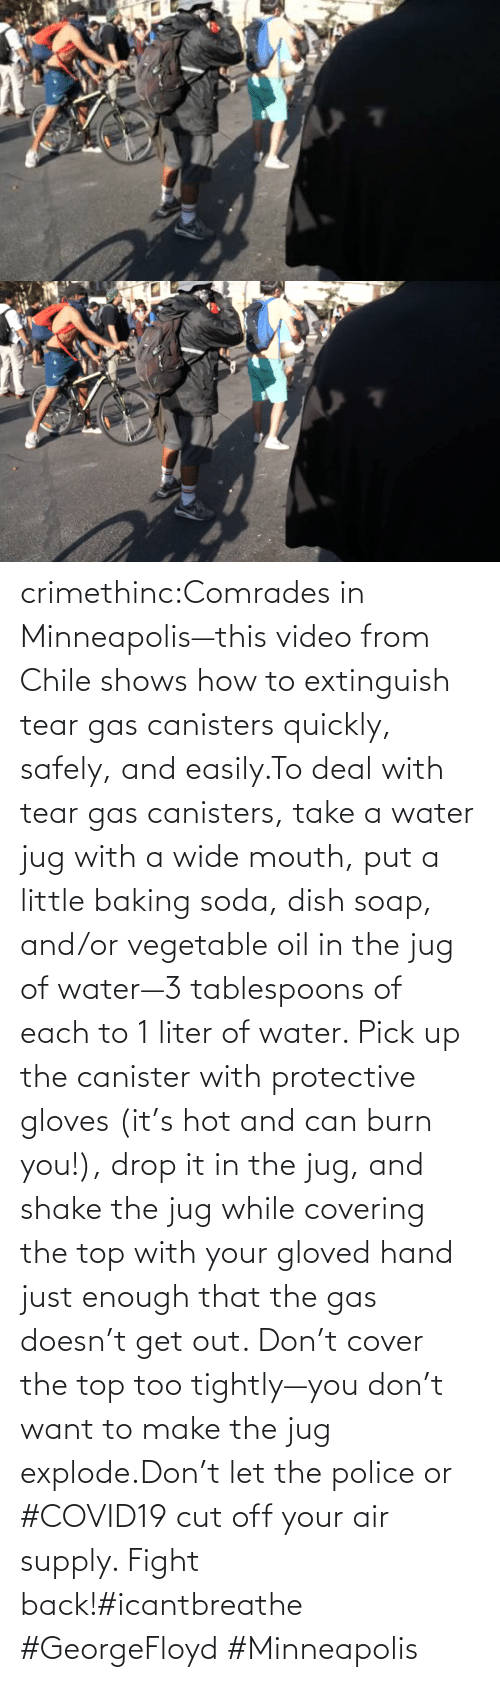 How To: crimethinc:Comrades in Minneapolis—this video from Chile shows how to extinguish tear gas canisters quickly, safely, and easily.To deal with tear gas canisters, take a water jug with a wide mouth, put a little baking soda, dish soap, and/or vegetable oil in the jug of water—3 tablespoons of each to 1 liter of water. Pick up the canister with protective gloves (it's hot and can burn you!), drop it in the jug, and shake the jug while covering the top with your gloved hand just enough that the gas doesn't get out. Don't cover the top too tightly—you don't want to make the jug explode.Don't let the police or #COVID19 cut off your air supply. Fight back!#icantbreathe #GeorgeFloyd #Minneapolis